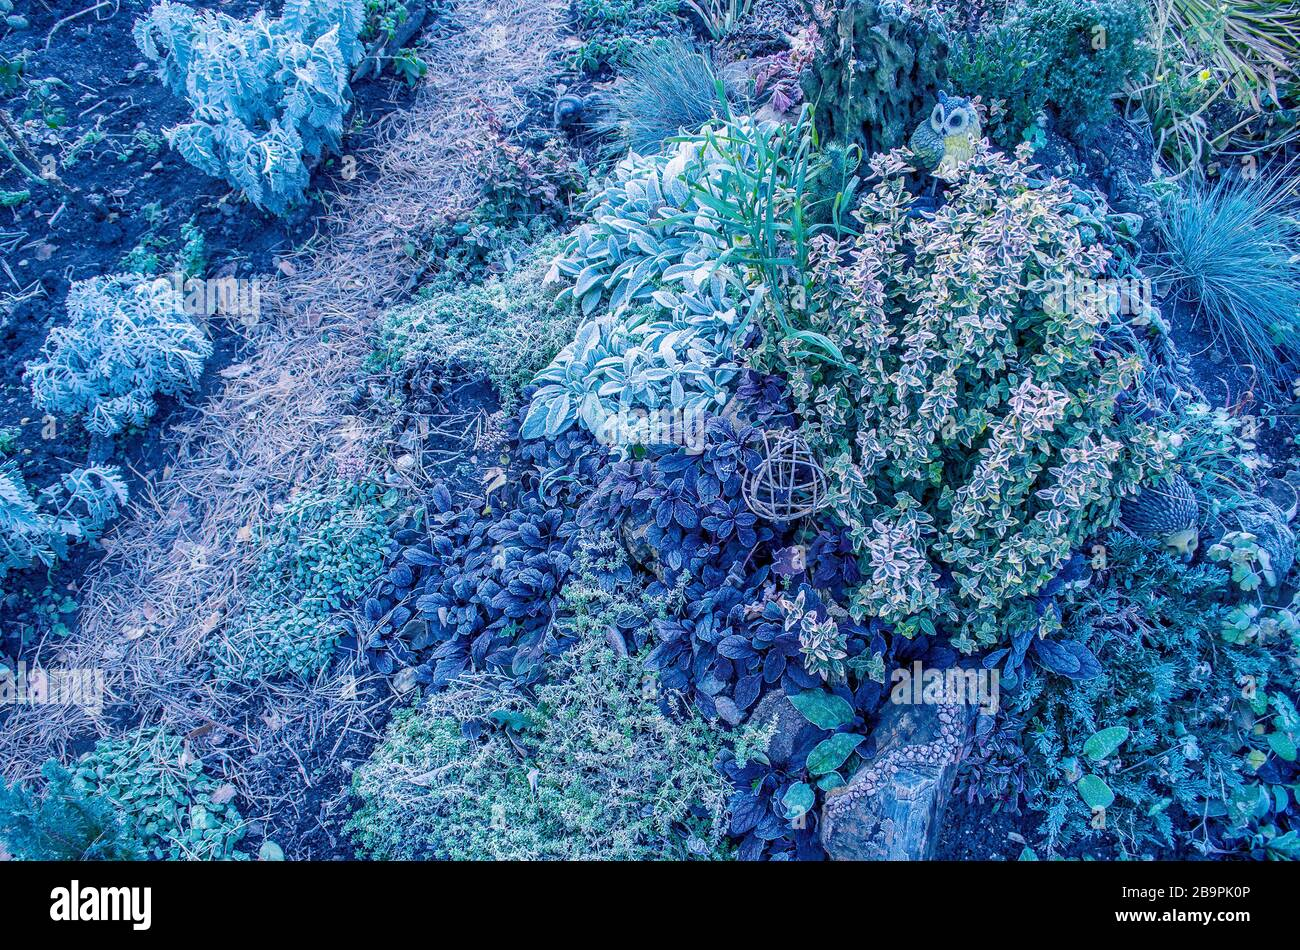 Frozen  bushes, greenery and flowers in the garden in winter. Stock Photo